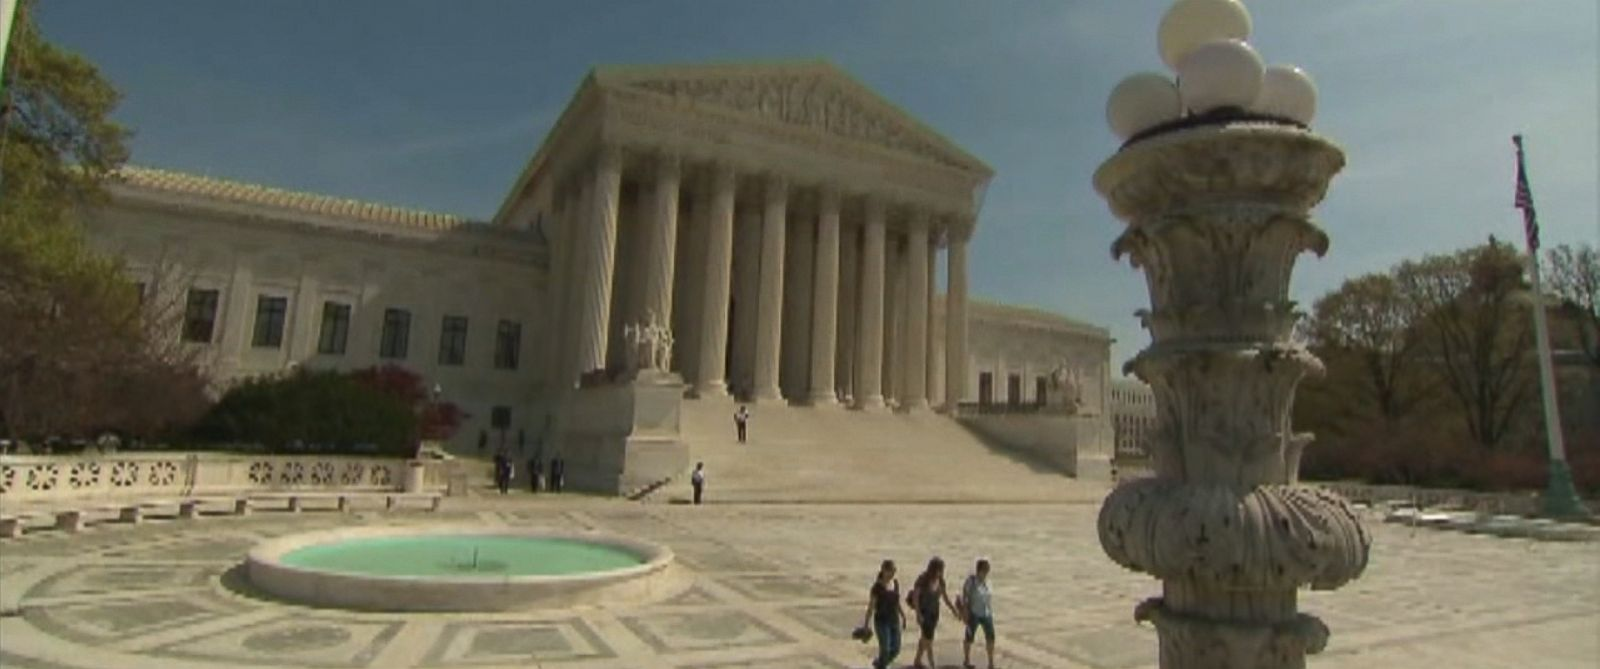 VIDEO: The Supreme Court on Monday put off weighing in on whether gerrymandering is unconstitutional - allowing, for now, maps in Wisconsin and Maryland to stand.